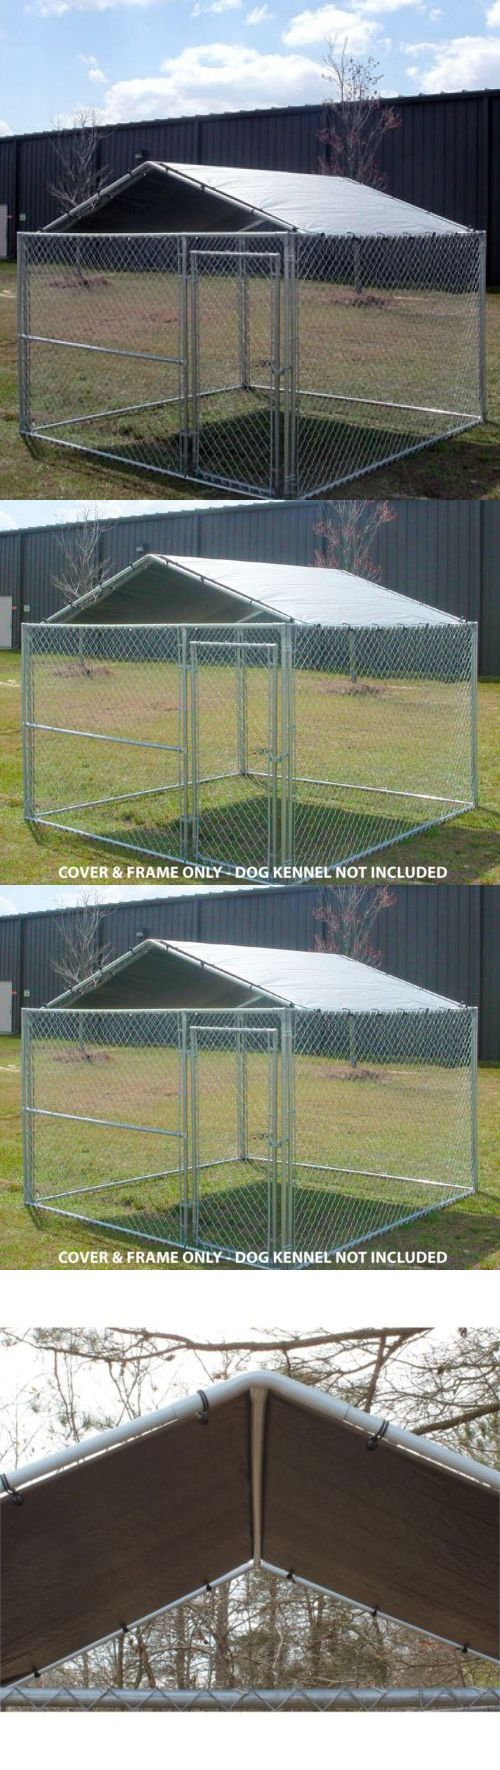 Fences and Exercise Pens 20748: Dog Kennel Cover 10 X 10 House Canopy Outdoor Run Pet Shelter Shade Weather -> BUY IT NOW ONLY: $95.27 on eBay!